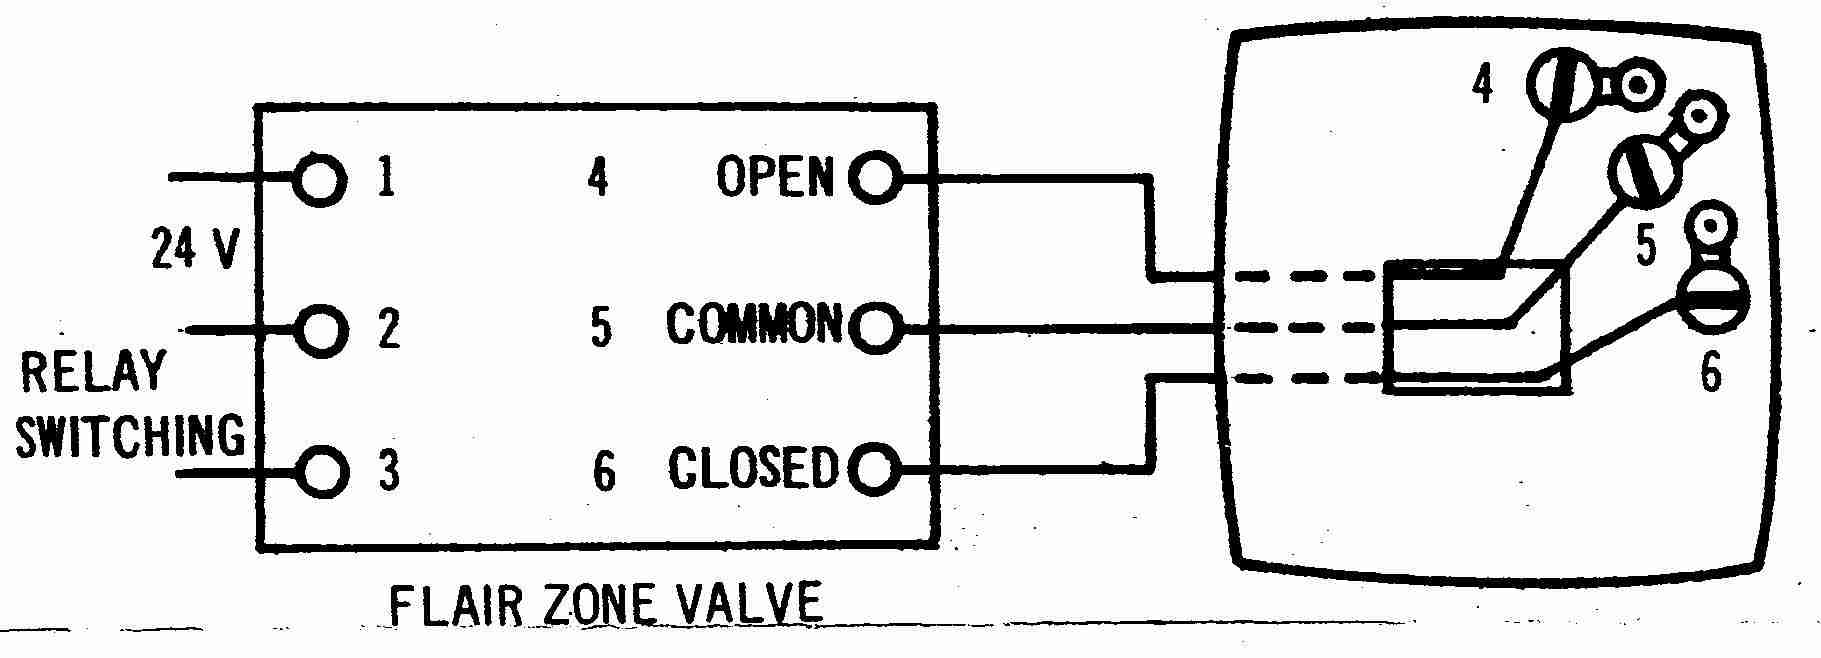 Zone Valve Wiring Installation Instructions Guide To Heating Car Stereo Speaker Wire Colors On 4 Pin 30 12 Volt Relay Flair 3 Thermostat Controlling A